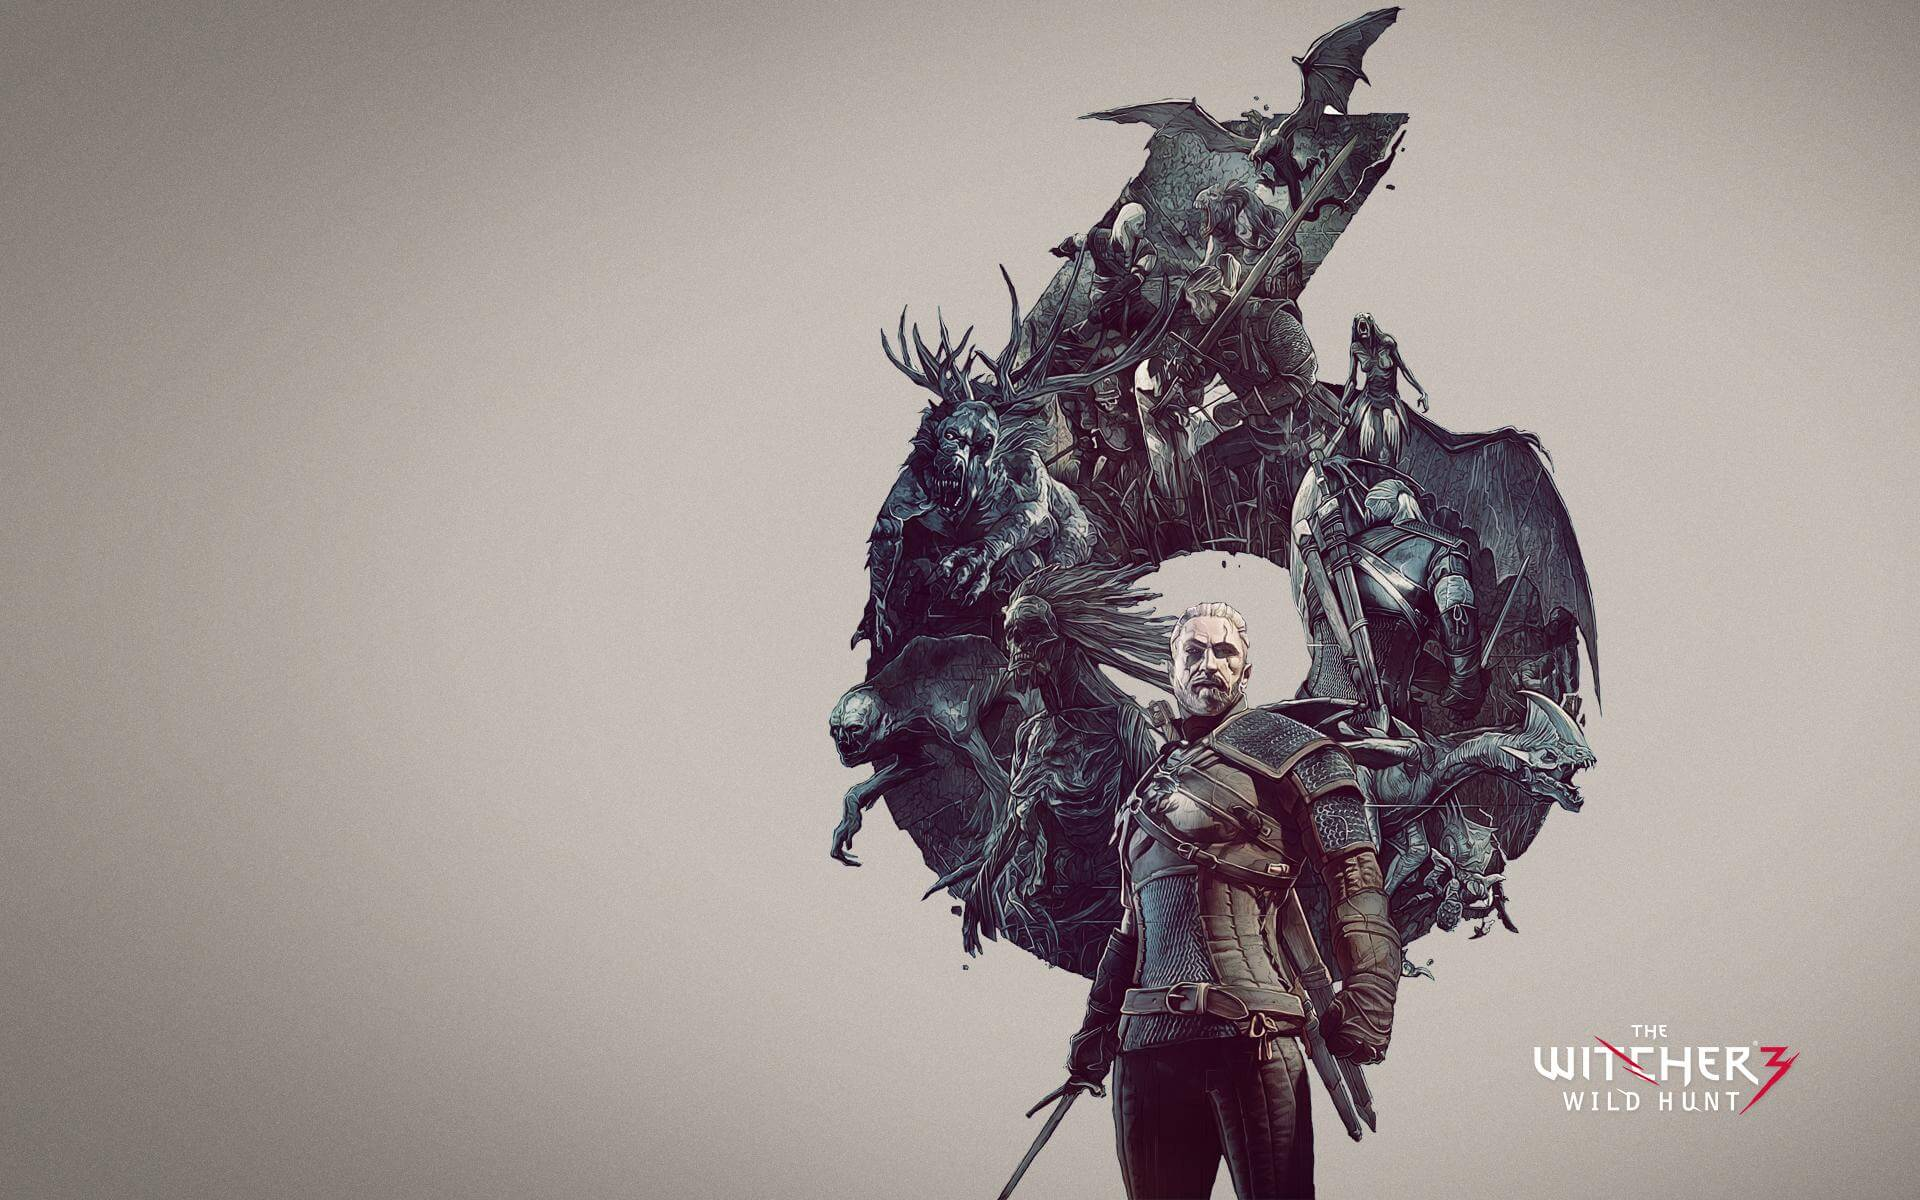 The-Witcher-3-Wild-Hunt-Game-2015-HD-Wallpaper